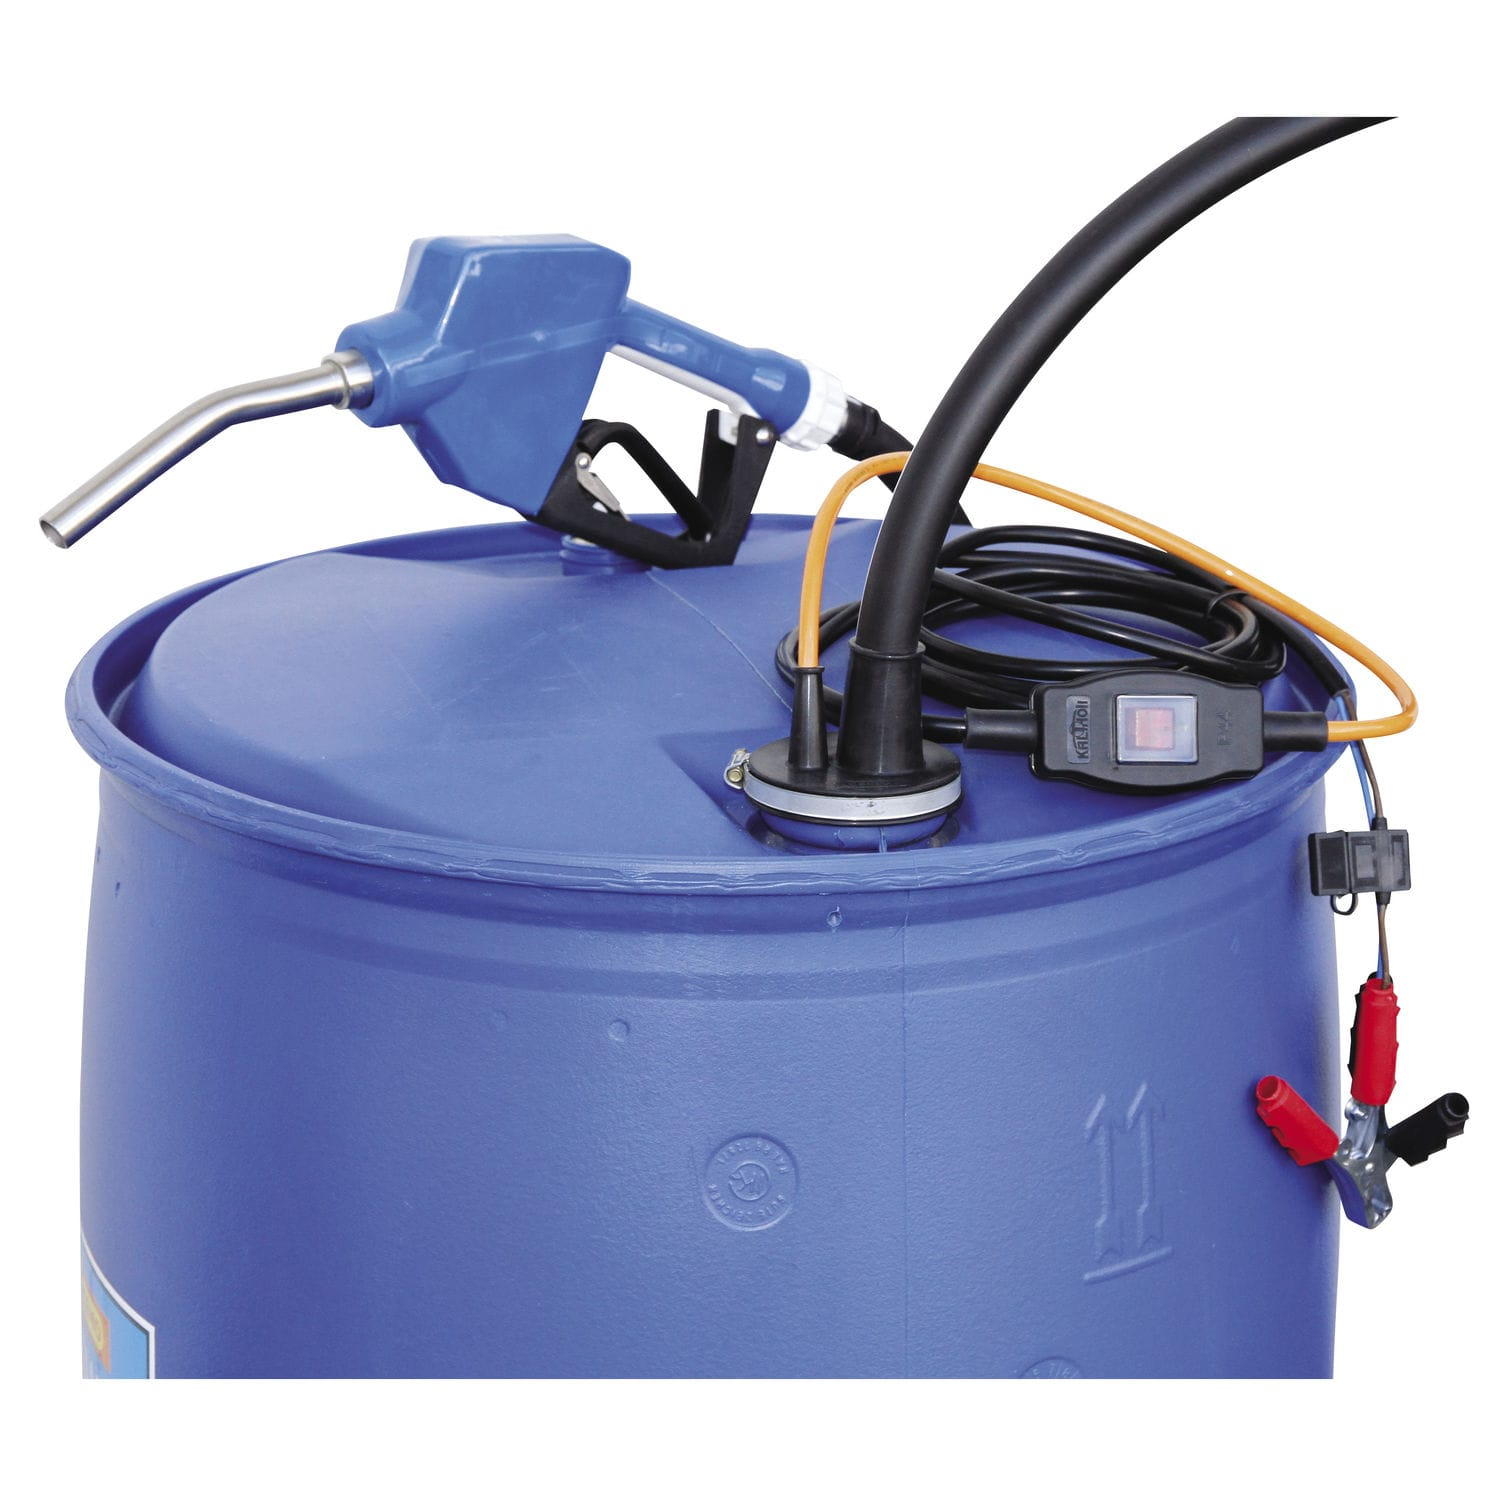 Immersed Rotary Vane Electric Fuel Pump That Lives In The Fuel Tank